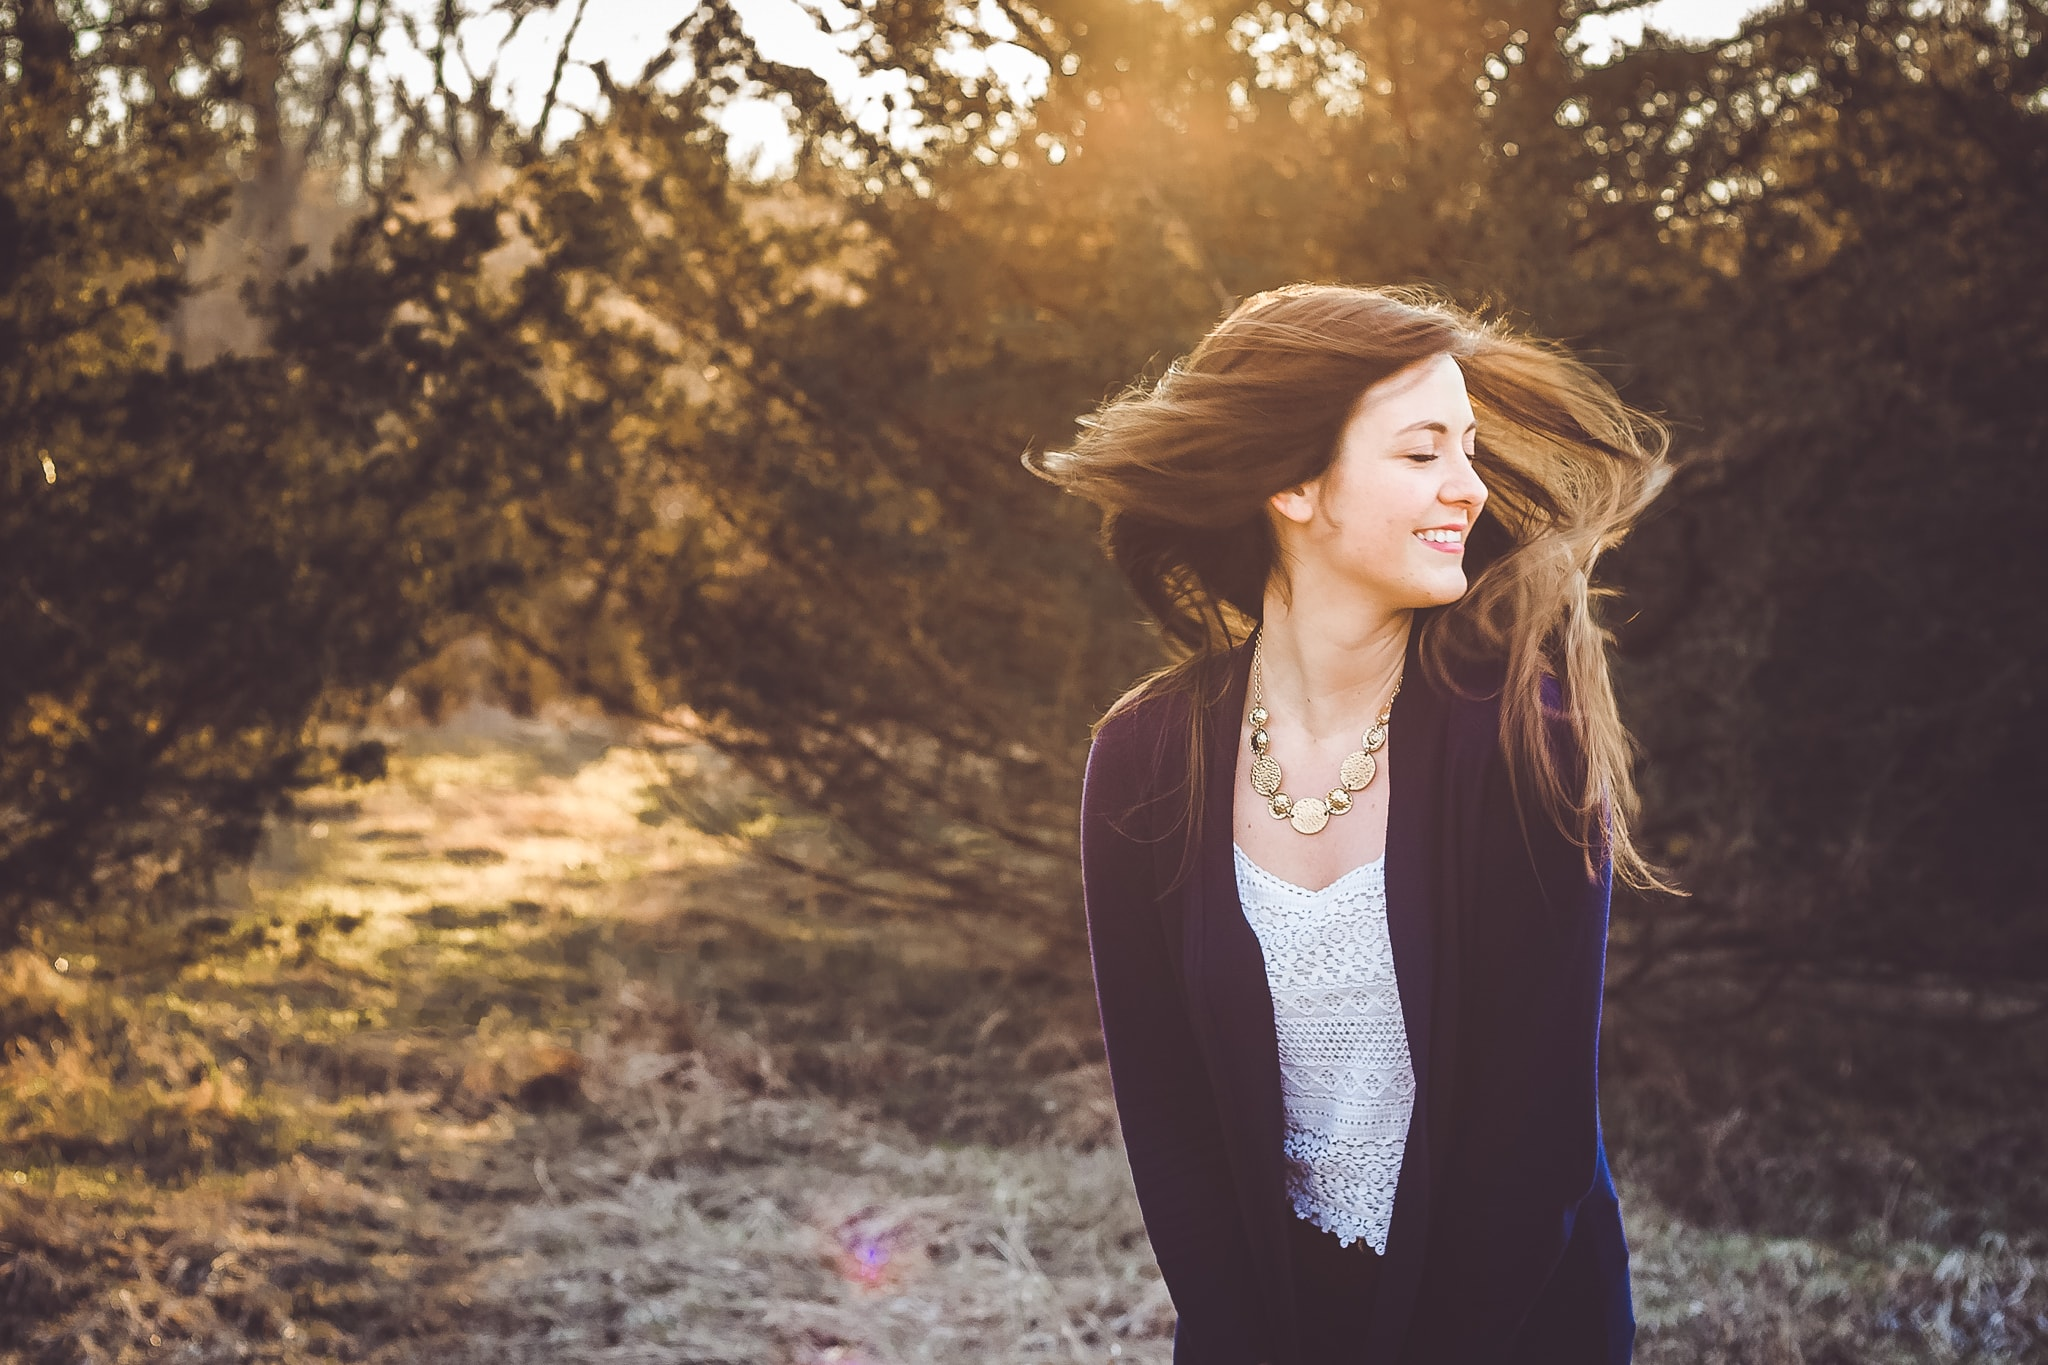 A beautiful, young senior girl turns her head and her long hair turns in the wind in this senior photograph by L+R Photography - Tulsa, OK